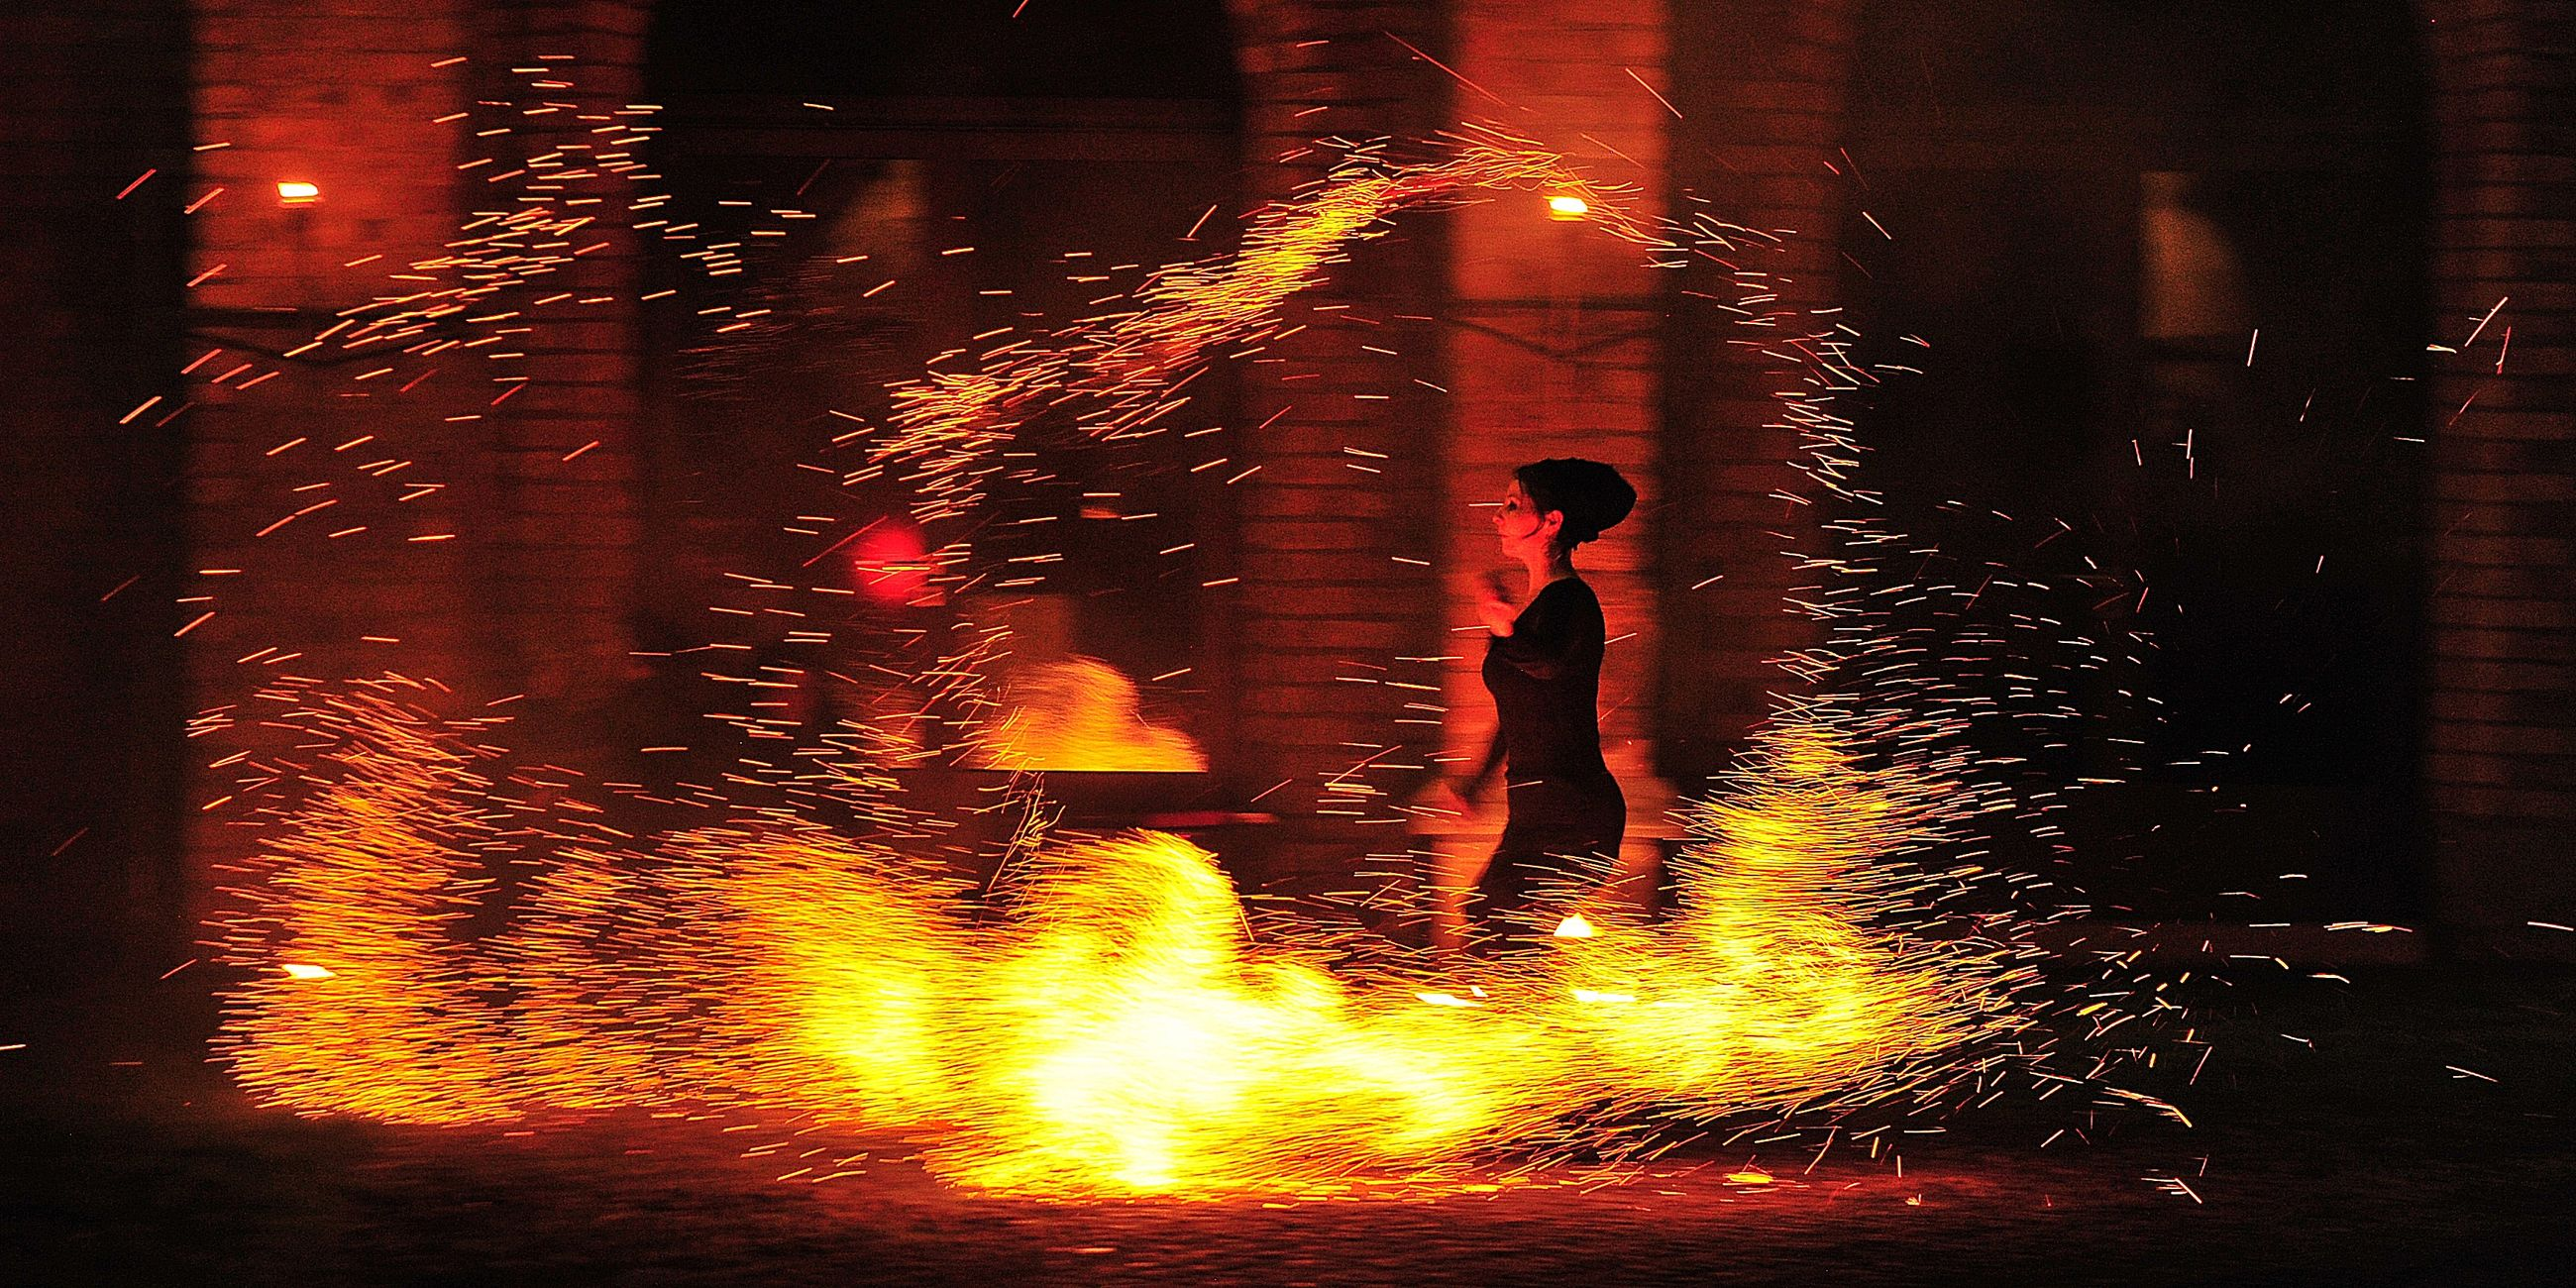 night, glowing, real people, burning, motion, men, firework display, illuminated, heat - temperature, firework - man made object, long exposure, outdoors, flame, lifestyles, water, standing, one person, people